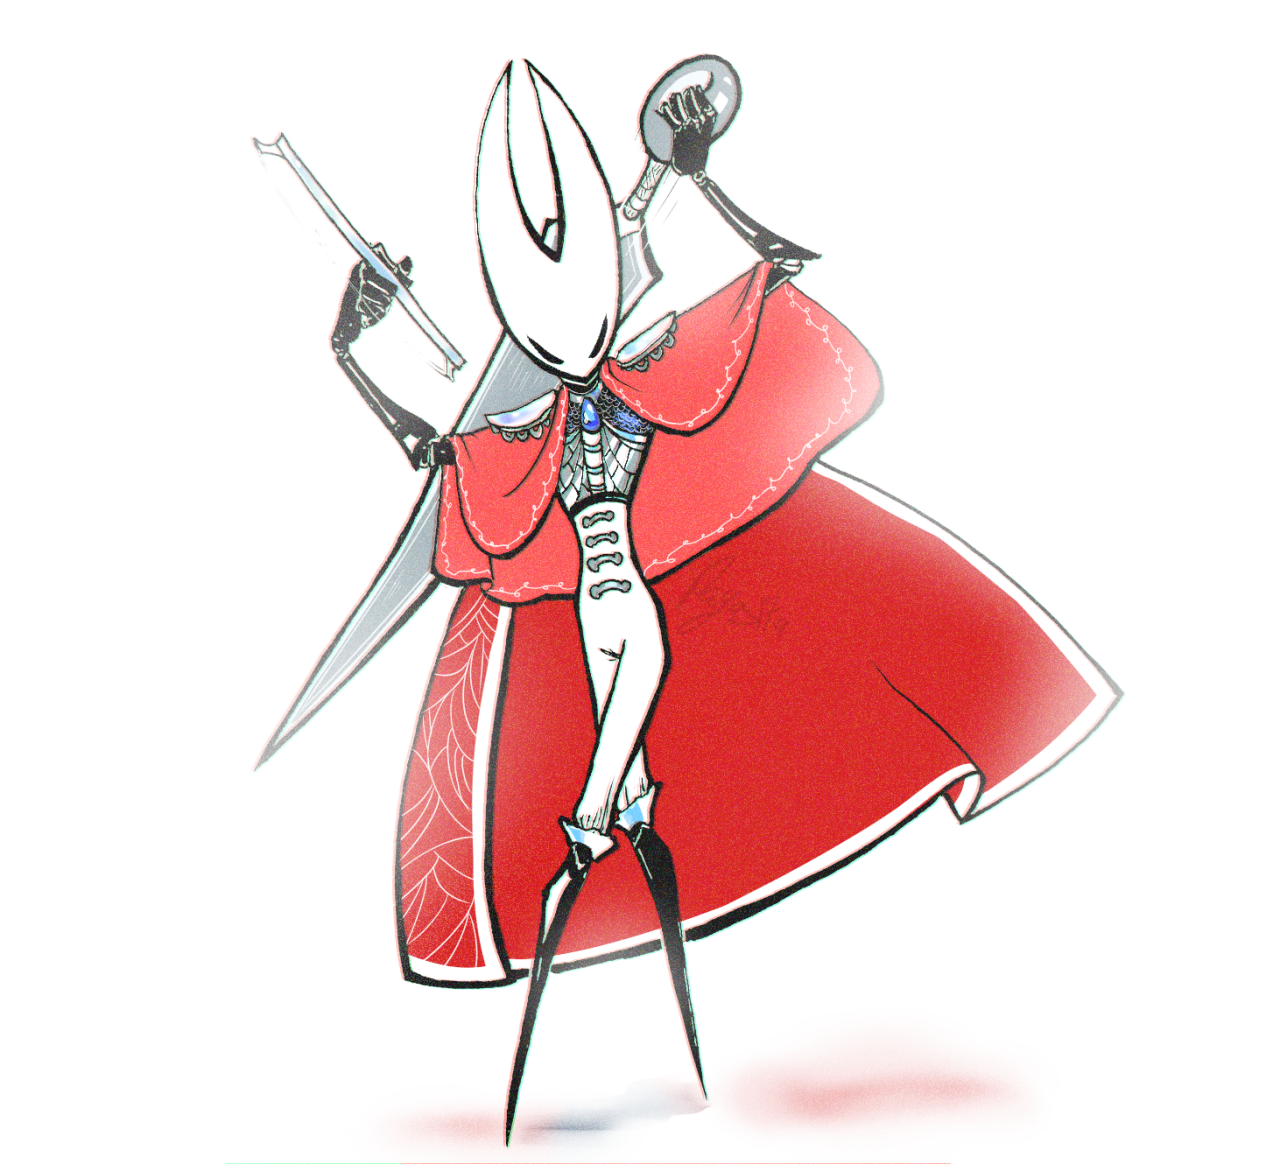 See A Recent Post On Tumblr From Doodledrawsthings About Hk Hornet Discover More Posts About Hk Hornet Hollow Art Hollow Night Character Design Inspiration